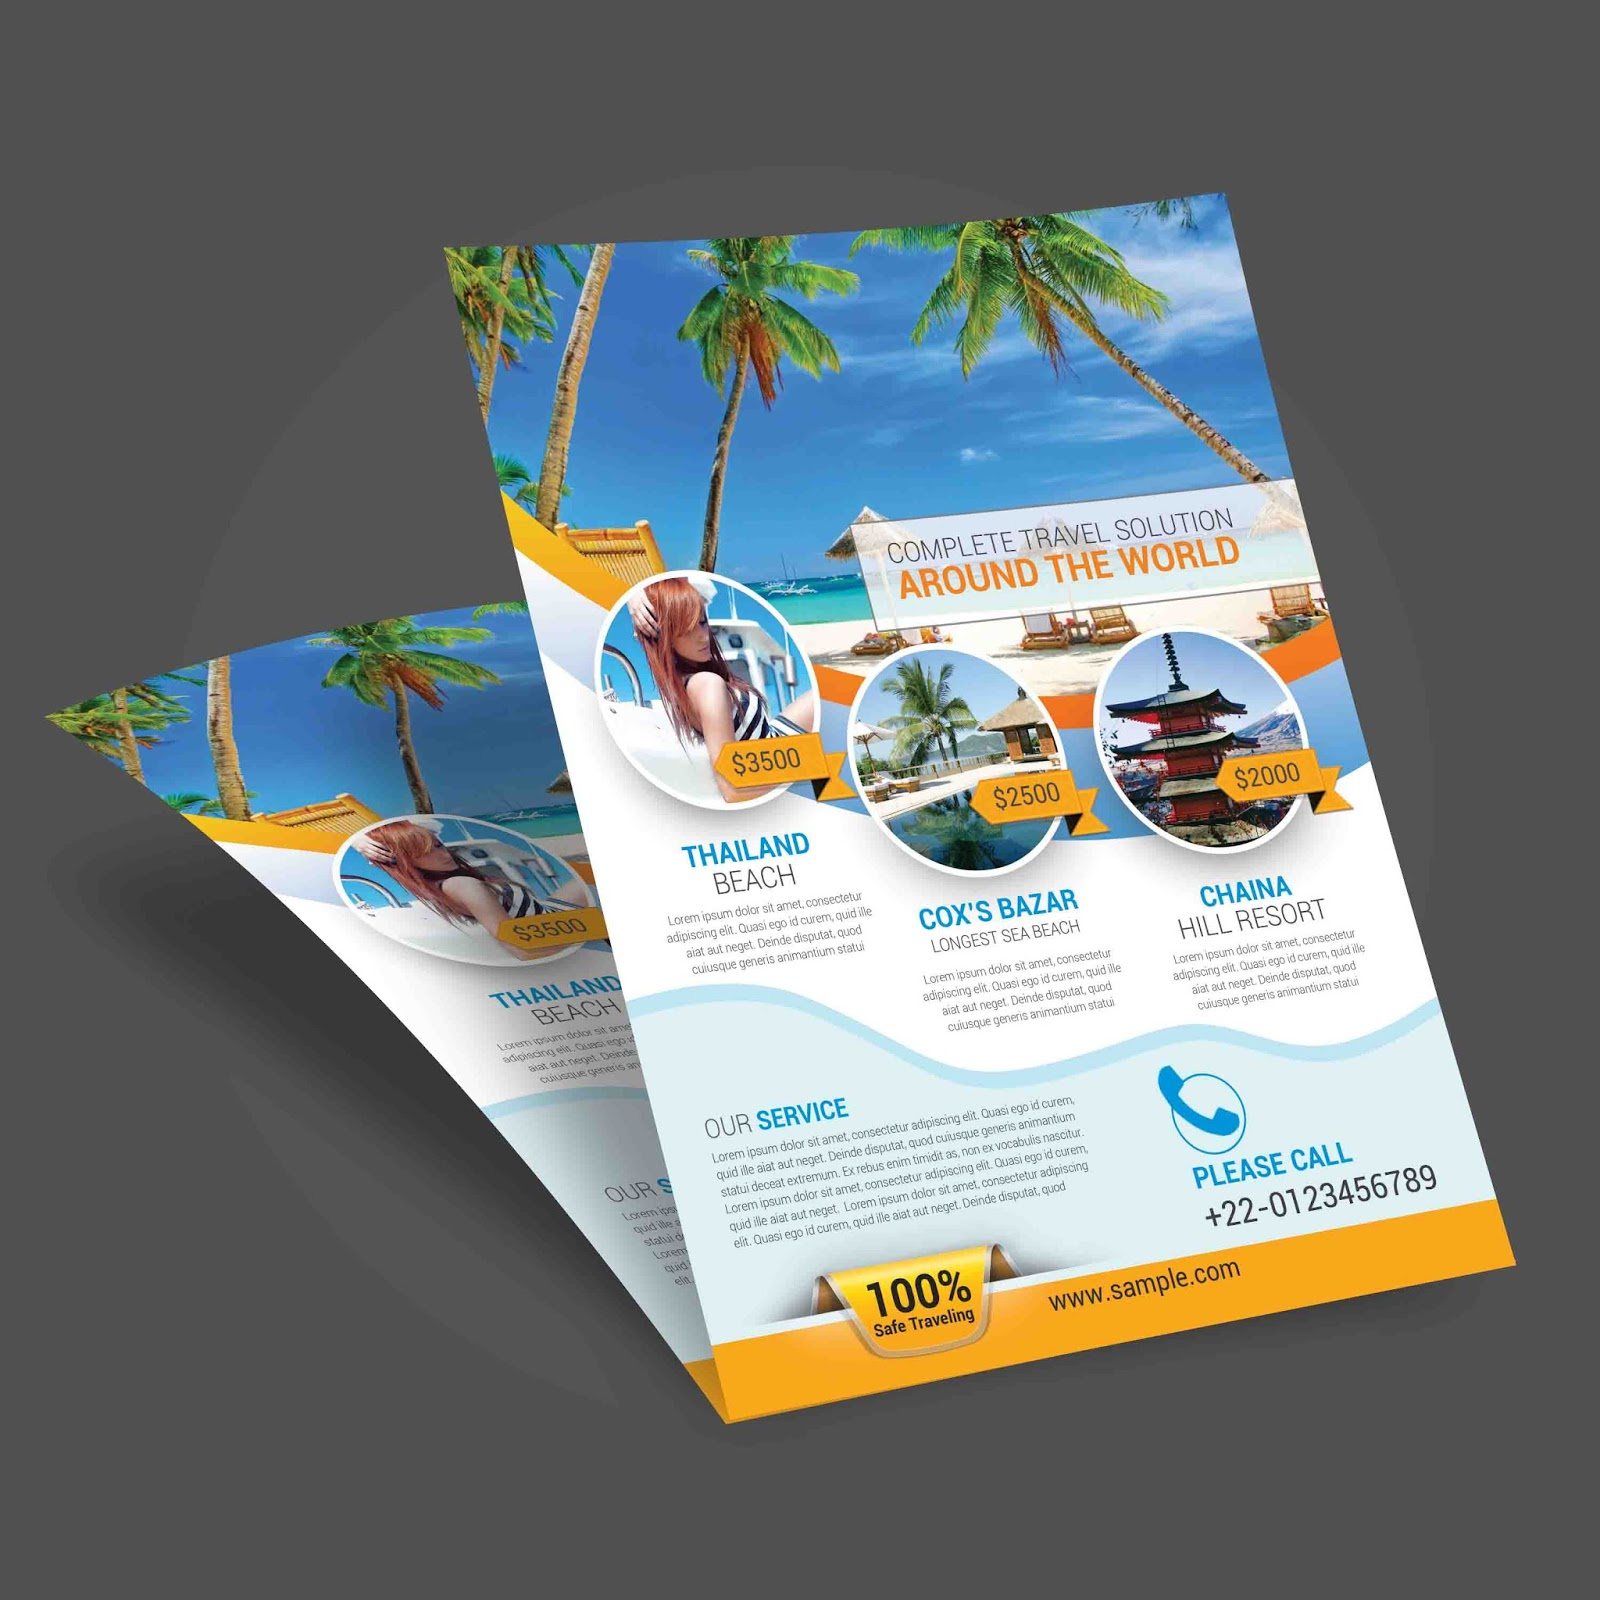 Printable Travel Brochure Template For Kids: Template Market